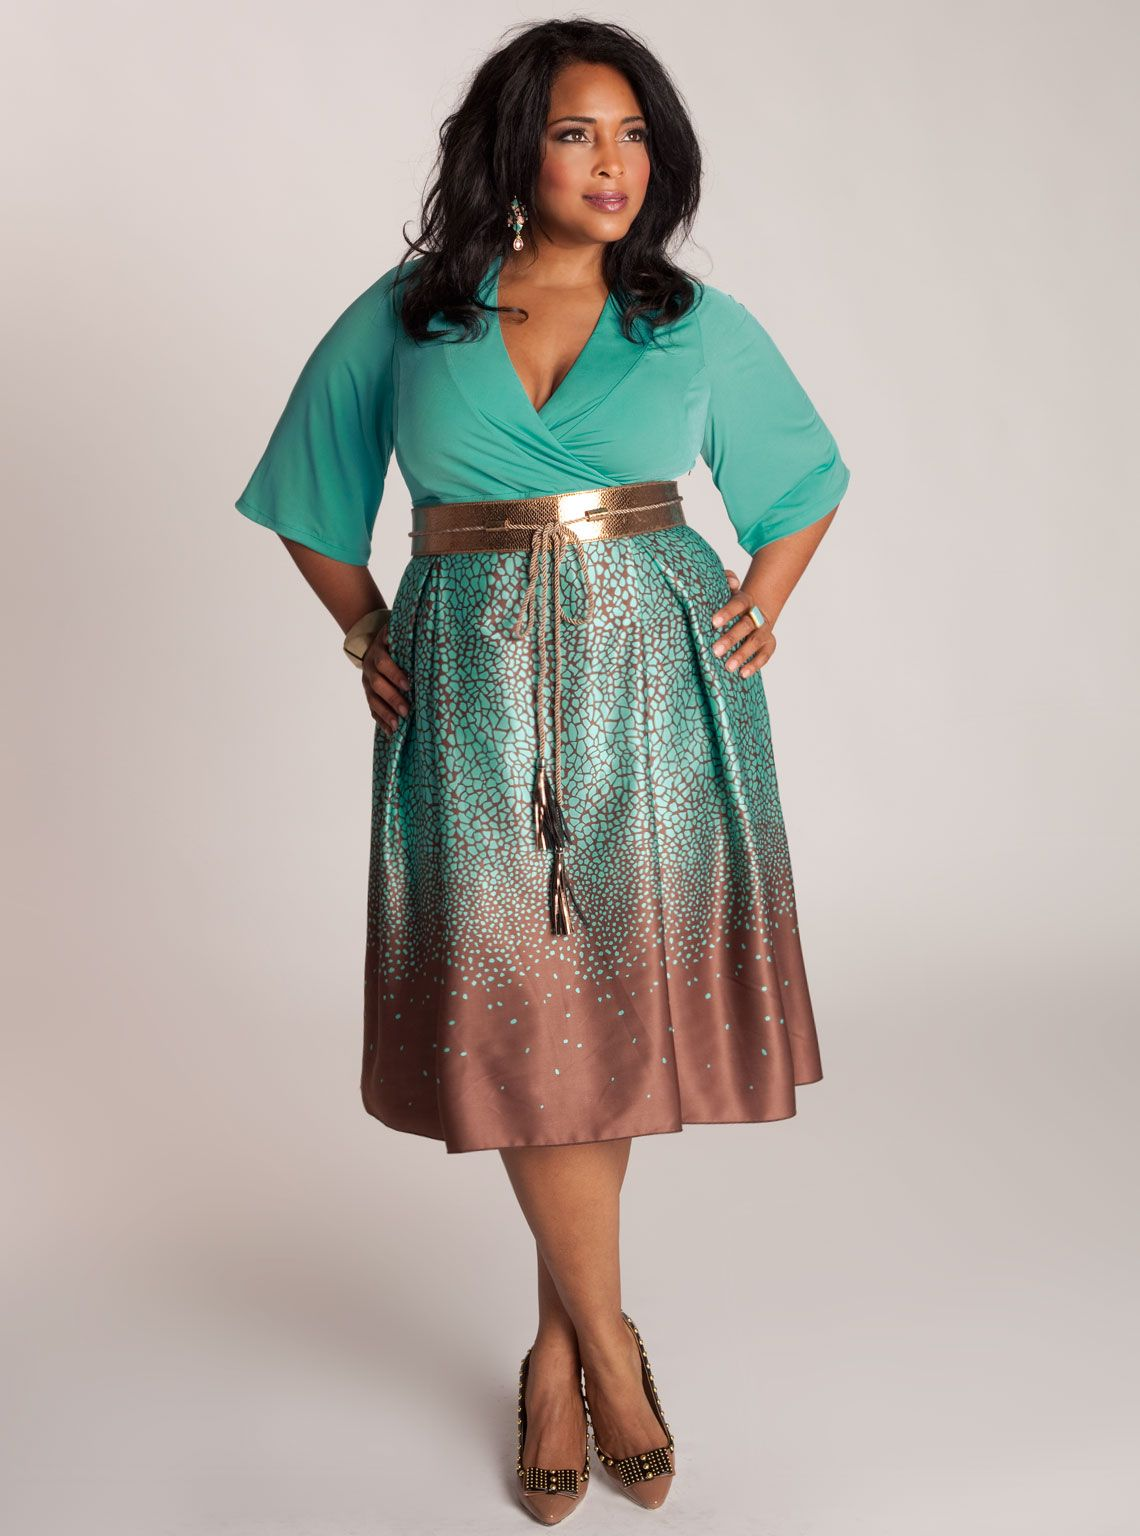 Beautiful Spring Dress Plus Size Photos - Mikejaninesmith.us ...